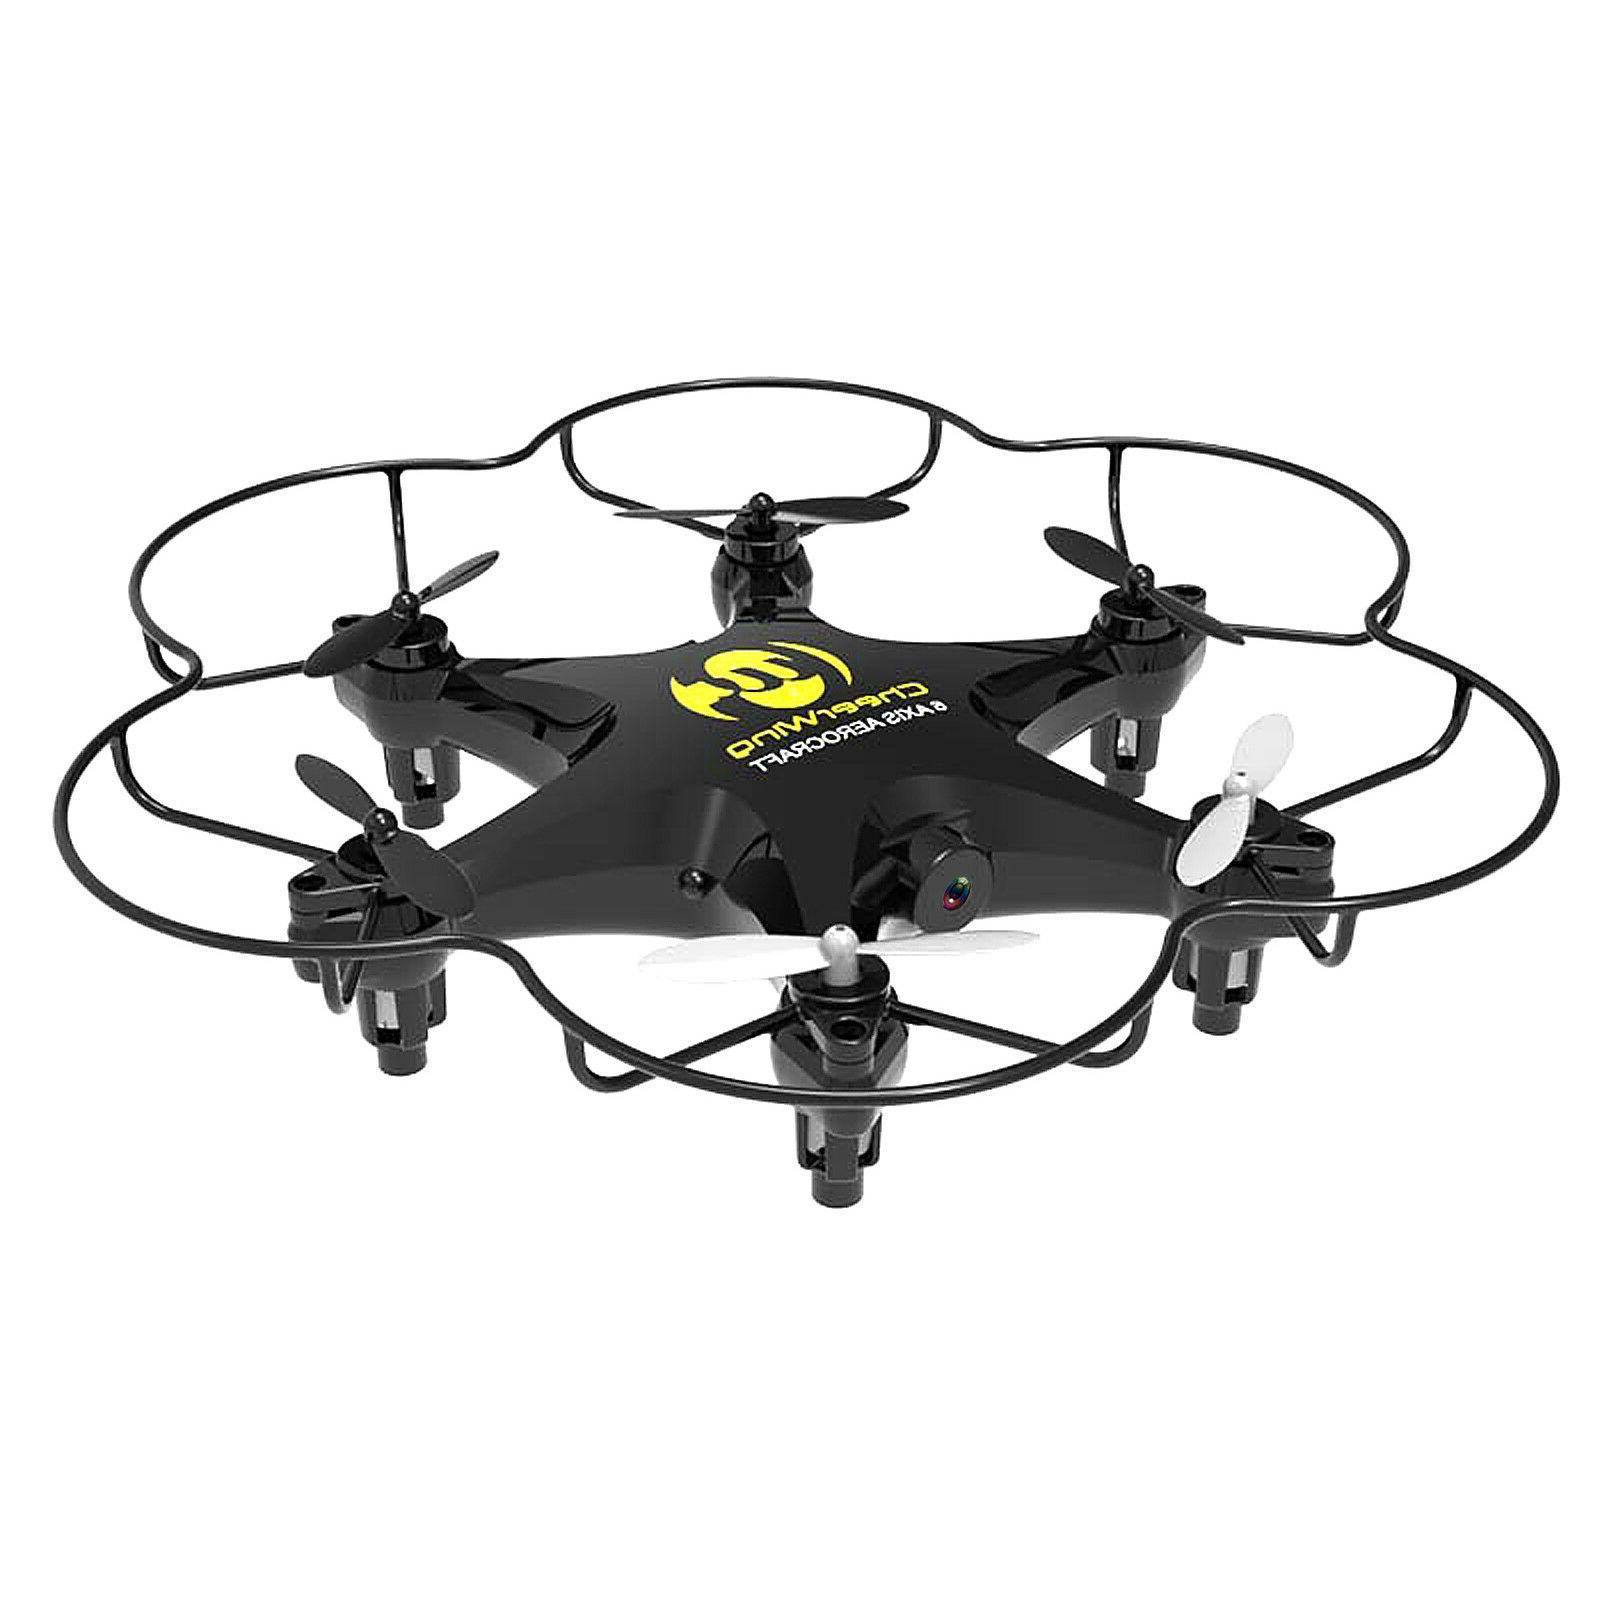 Cheerwing CW6 6-Axis Drone Camera